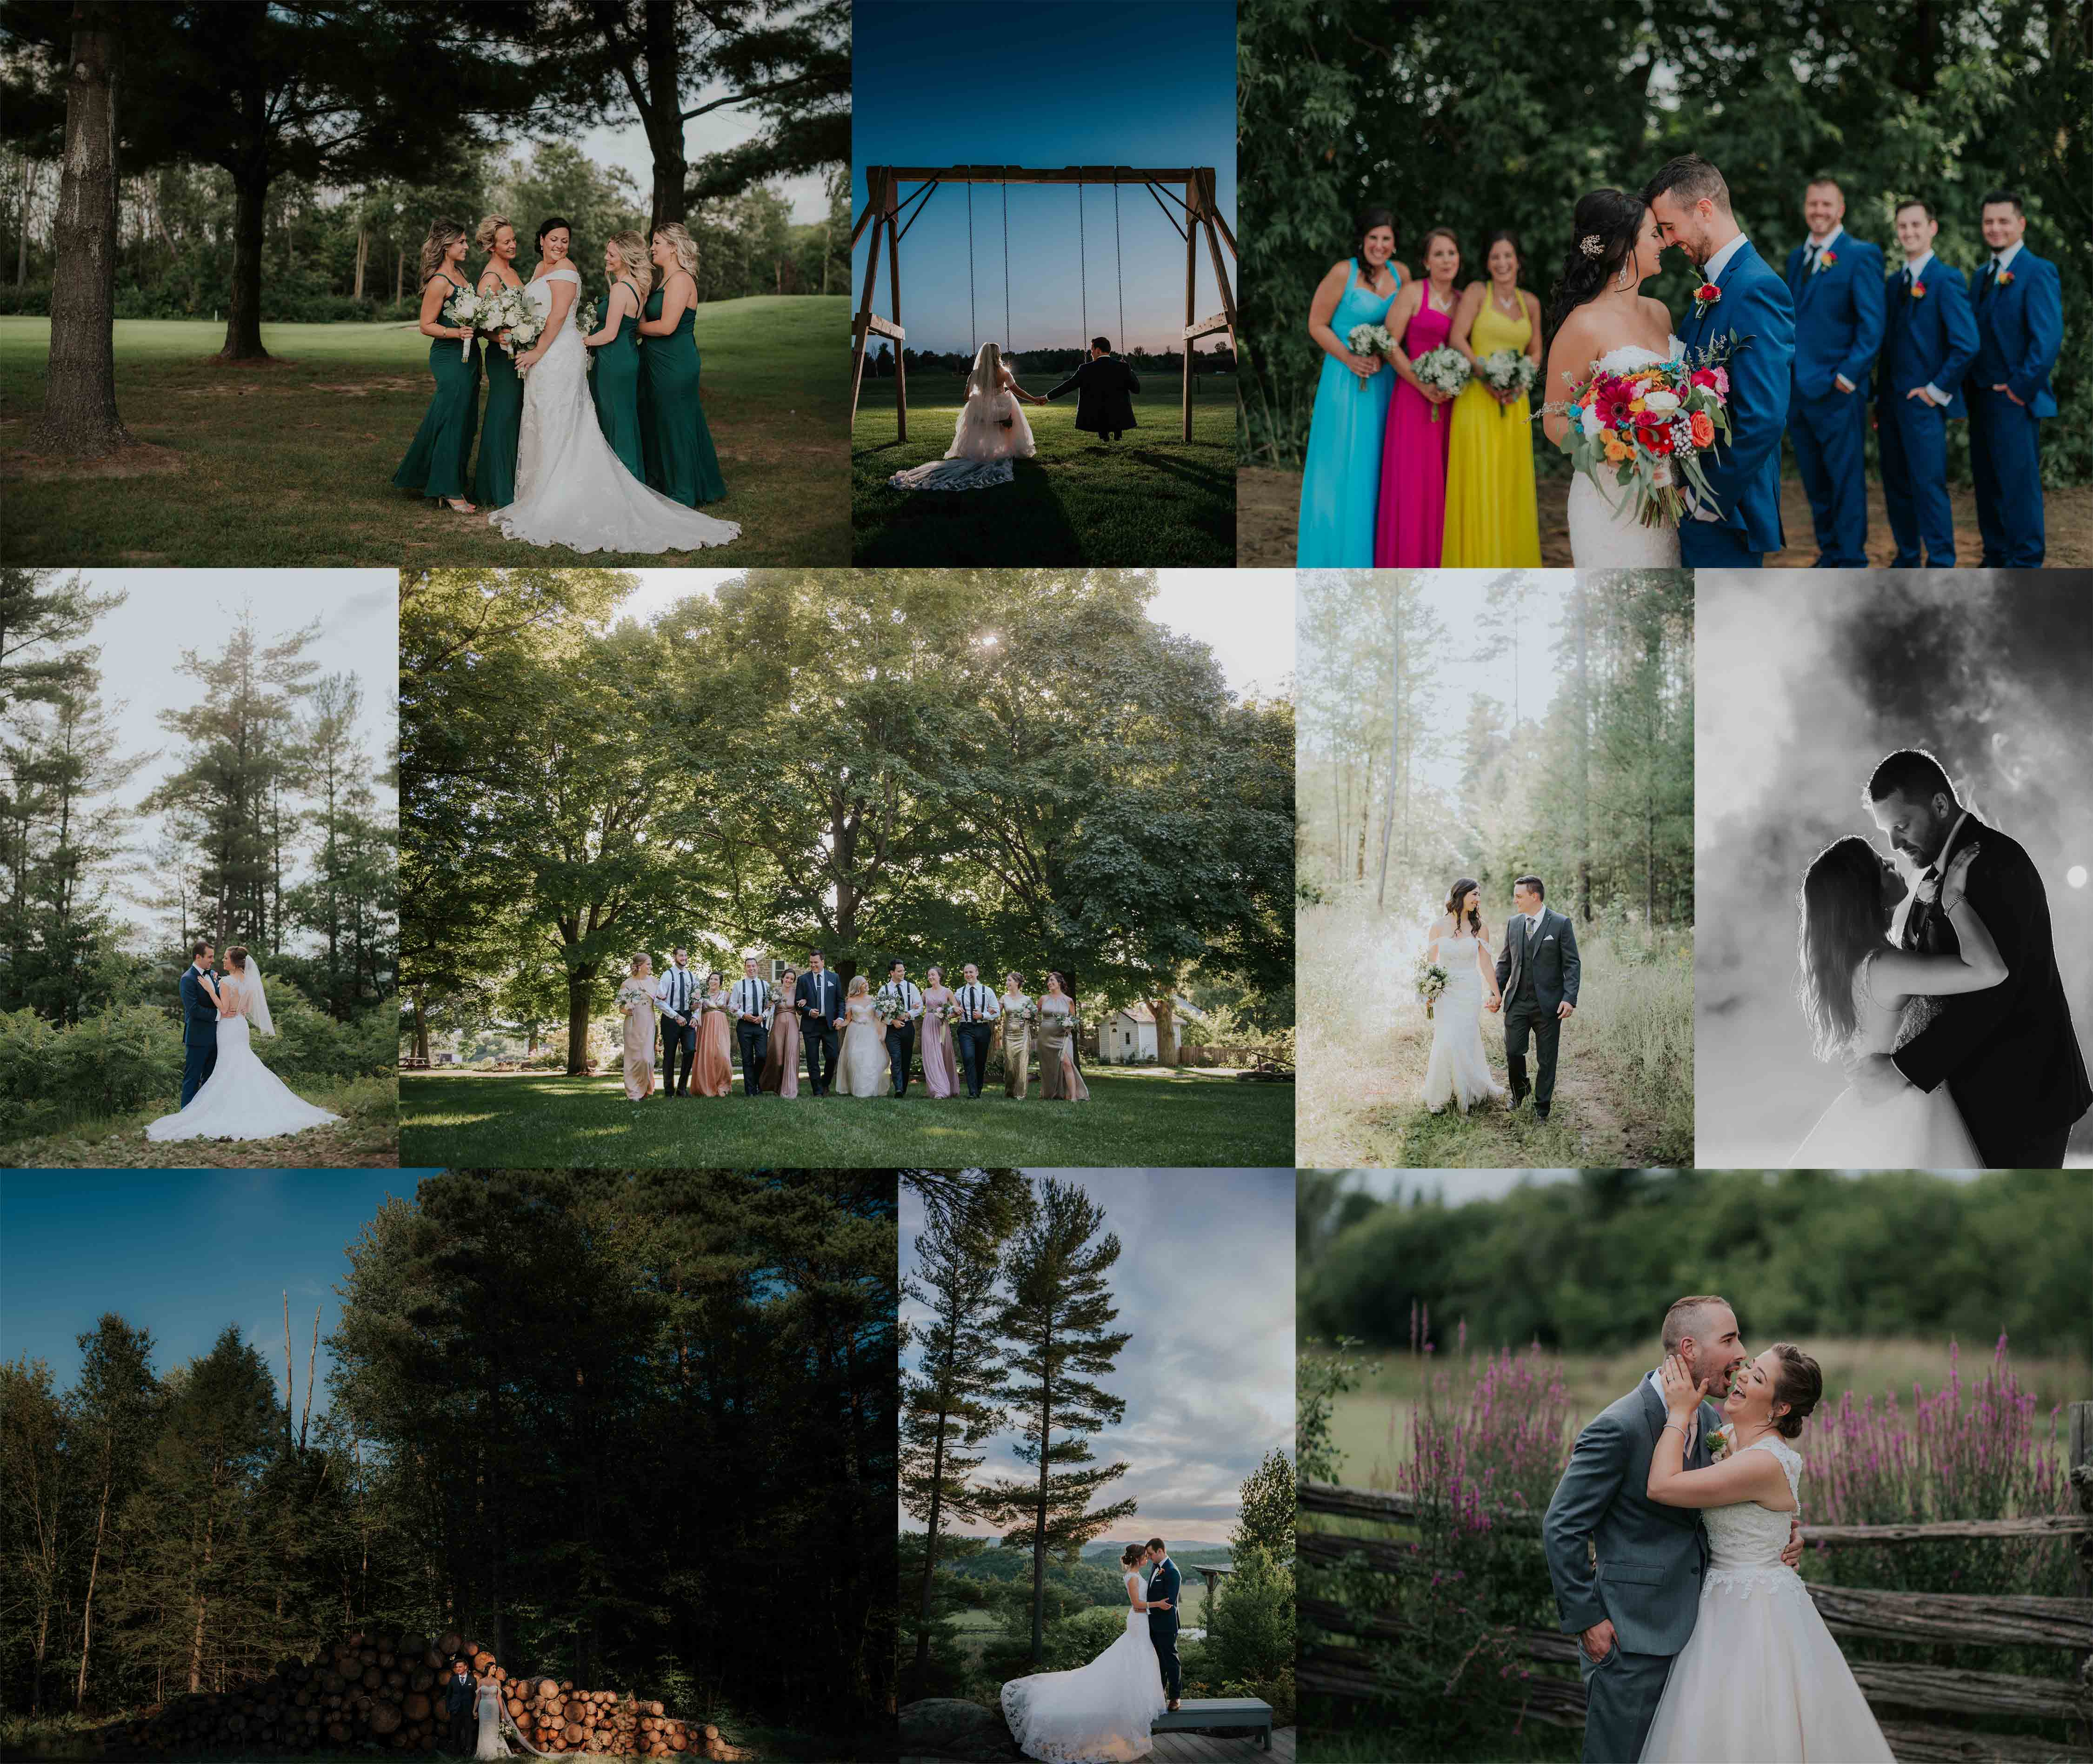 Ottawa wedding photographer Samantha Danis Photography